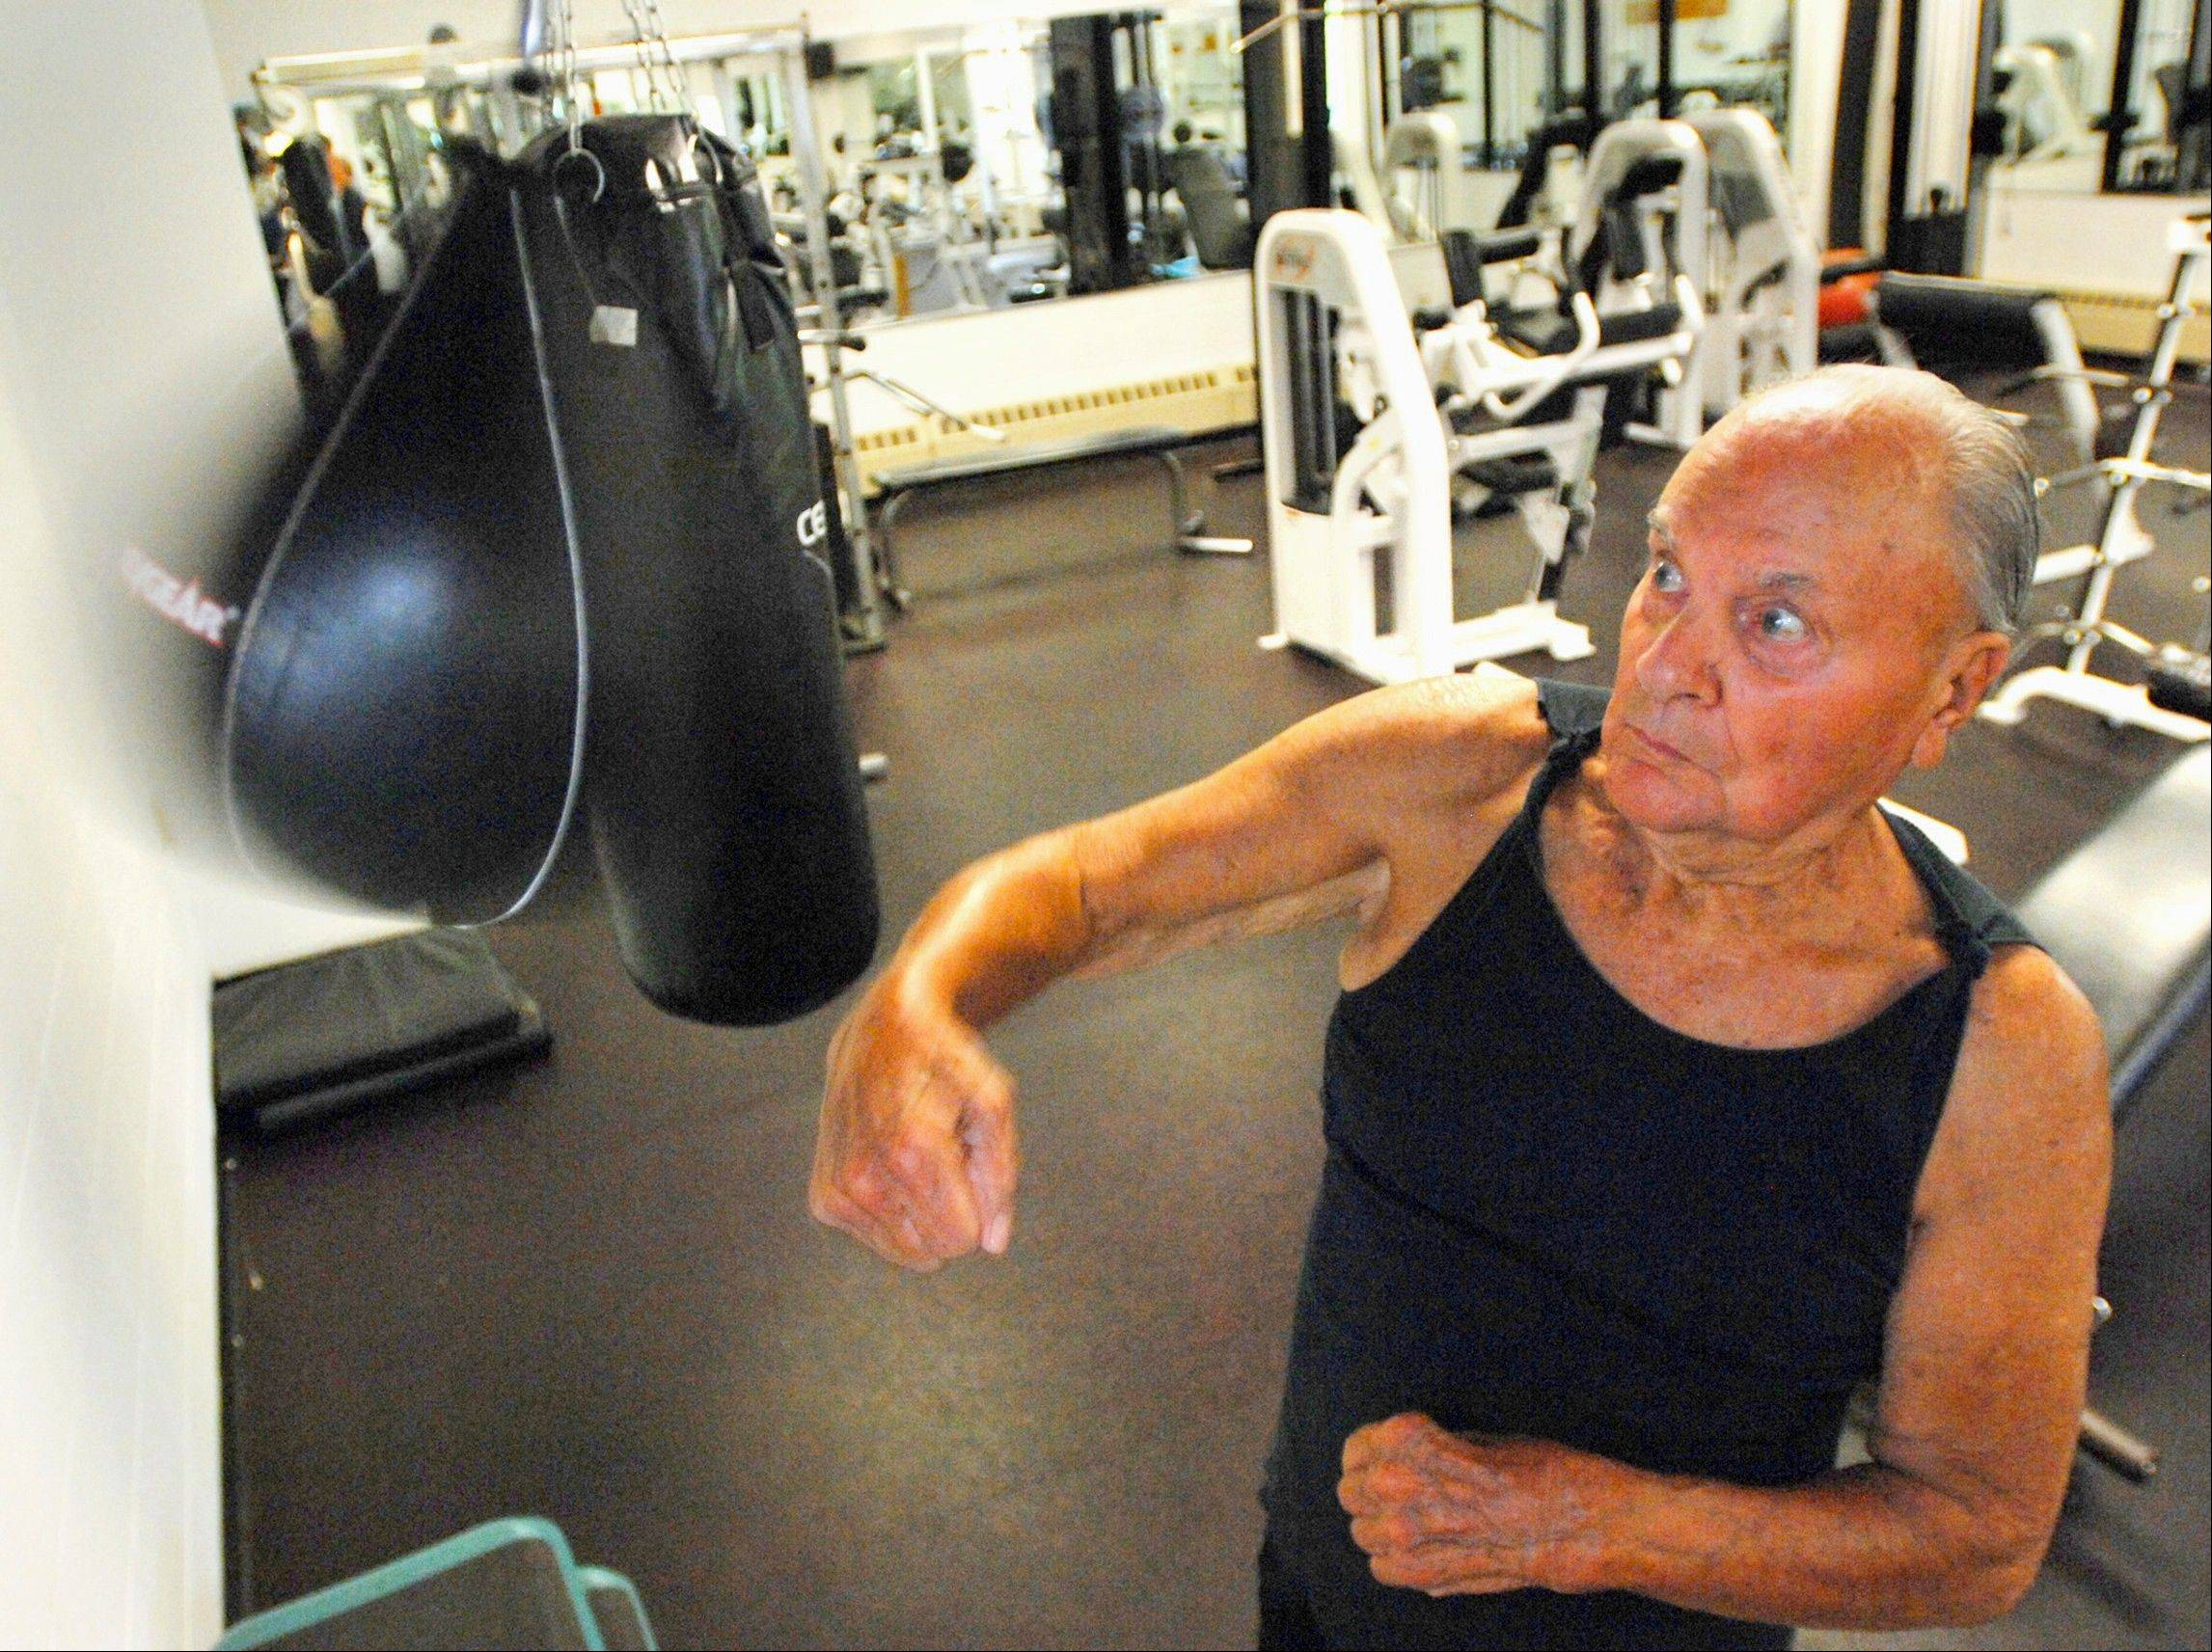 Retired farmer Glenn Bradd, 87, of Bloomington, Ill., uses a punching bag during a workout at the YMCA in Bloomington. Three days a week, he lifts weights, jumps rope, uses the punching bag, does sit-ups and stretching.